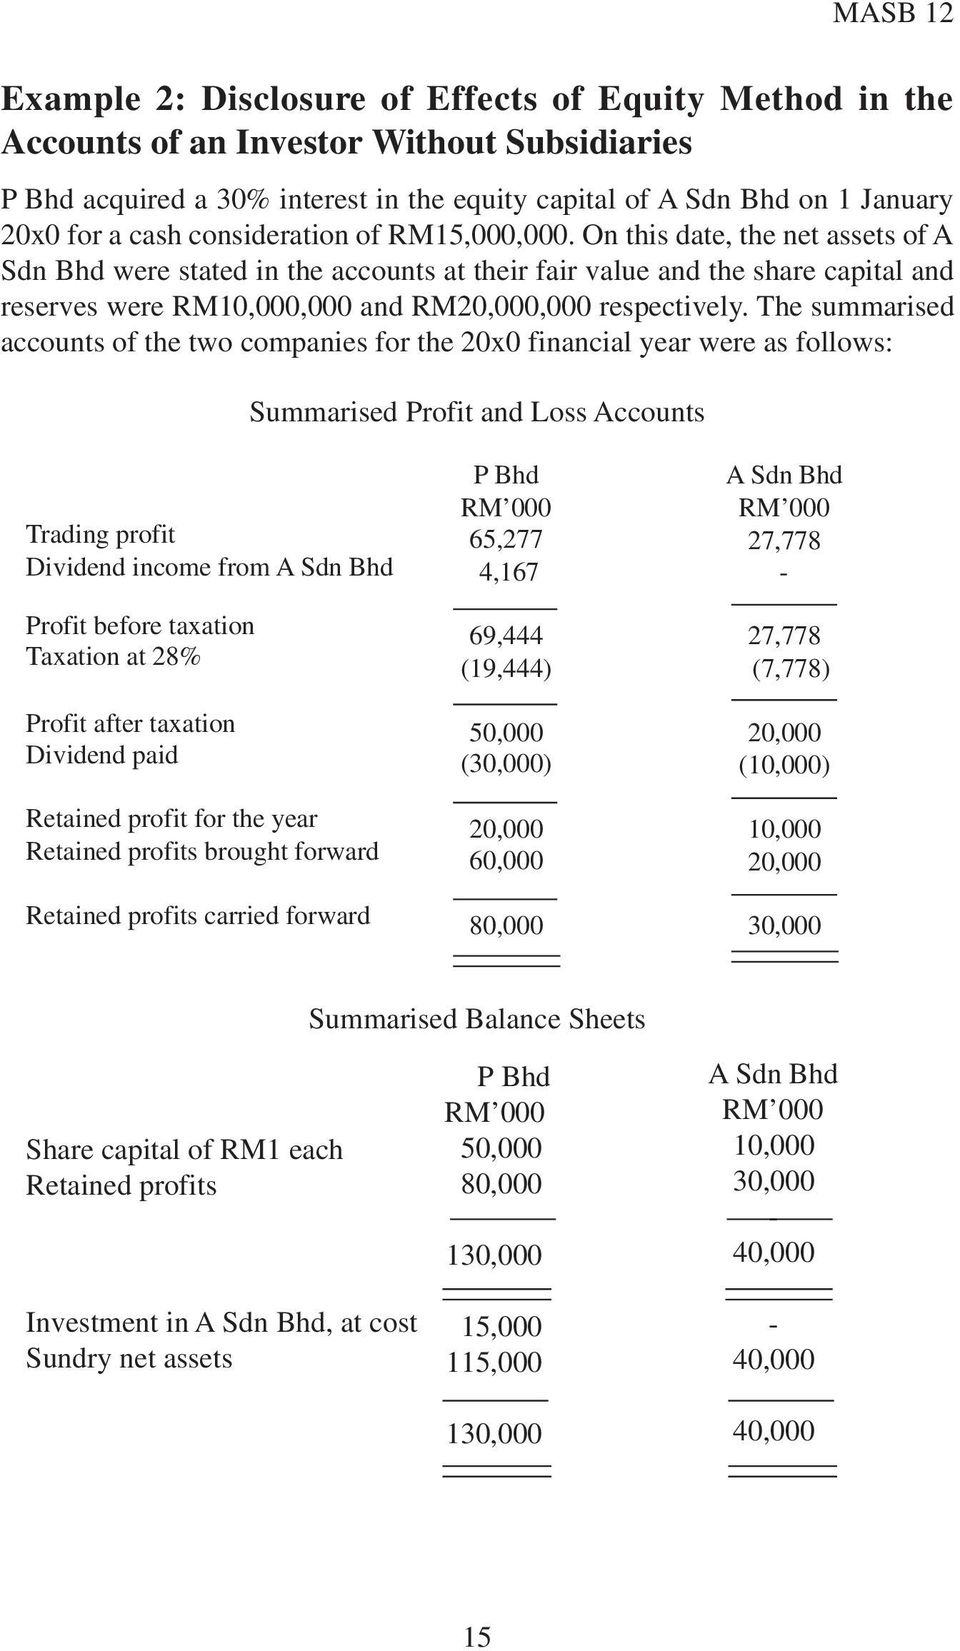 On this date, the net assets of A Sdn Bhd were stated in the accounts at their fair value and the share capital and reserves were RM10,000,000 and RM20,000,000 respectively.